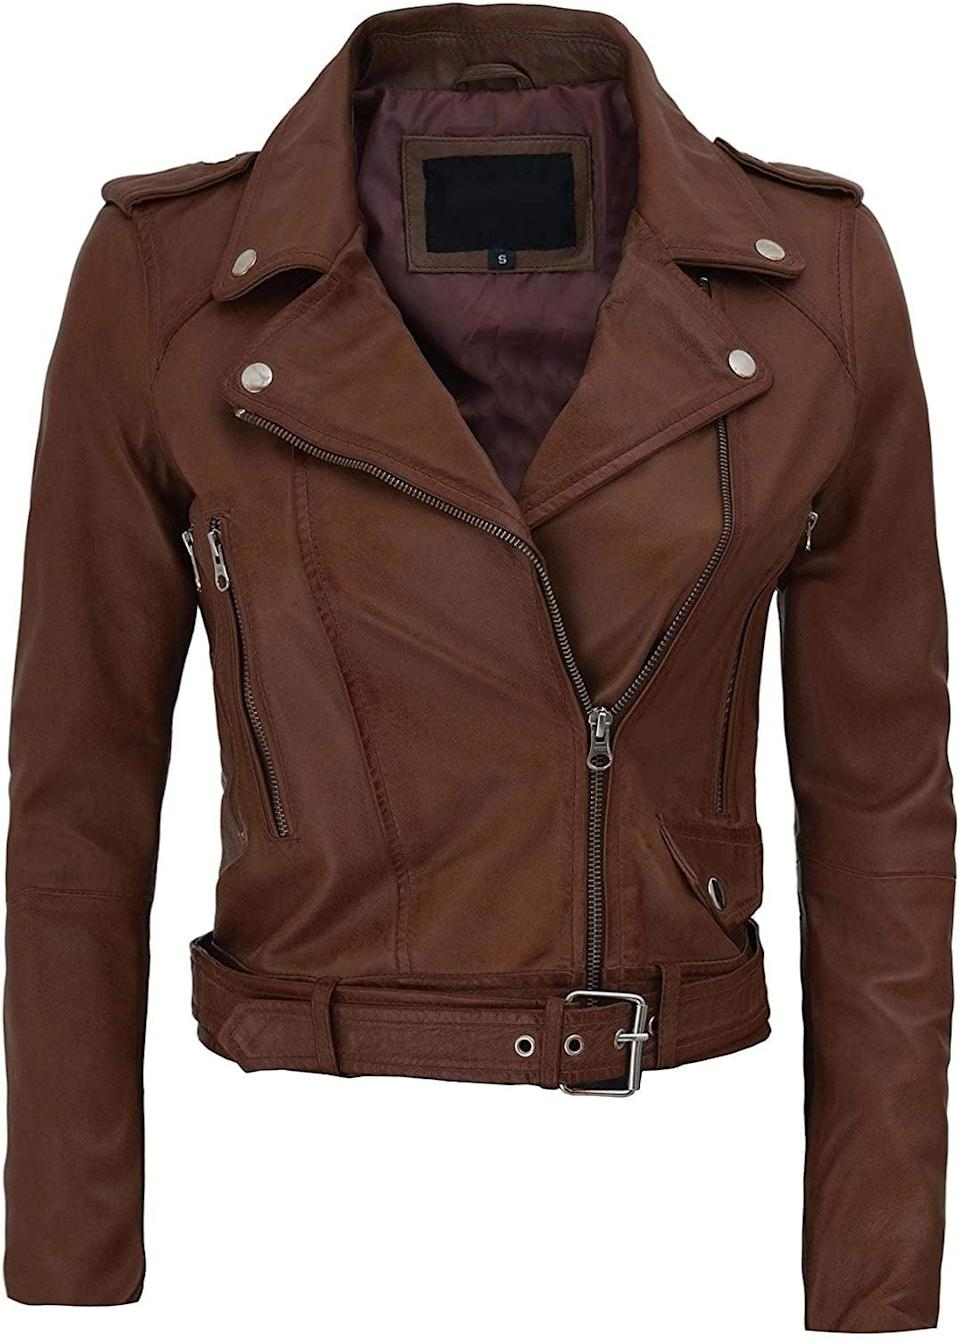 <p>This <span>Blingsoul Leather Jacket</span> ($169) is edgy and cool.</p>